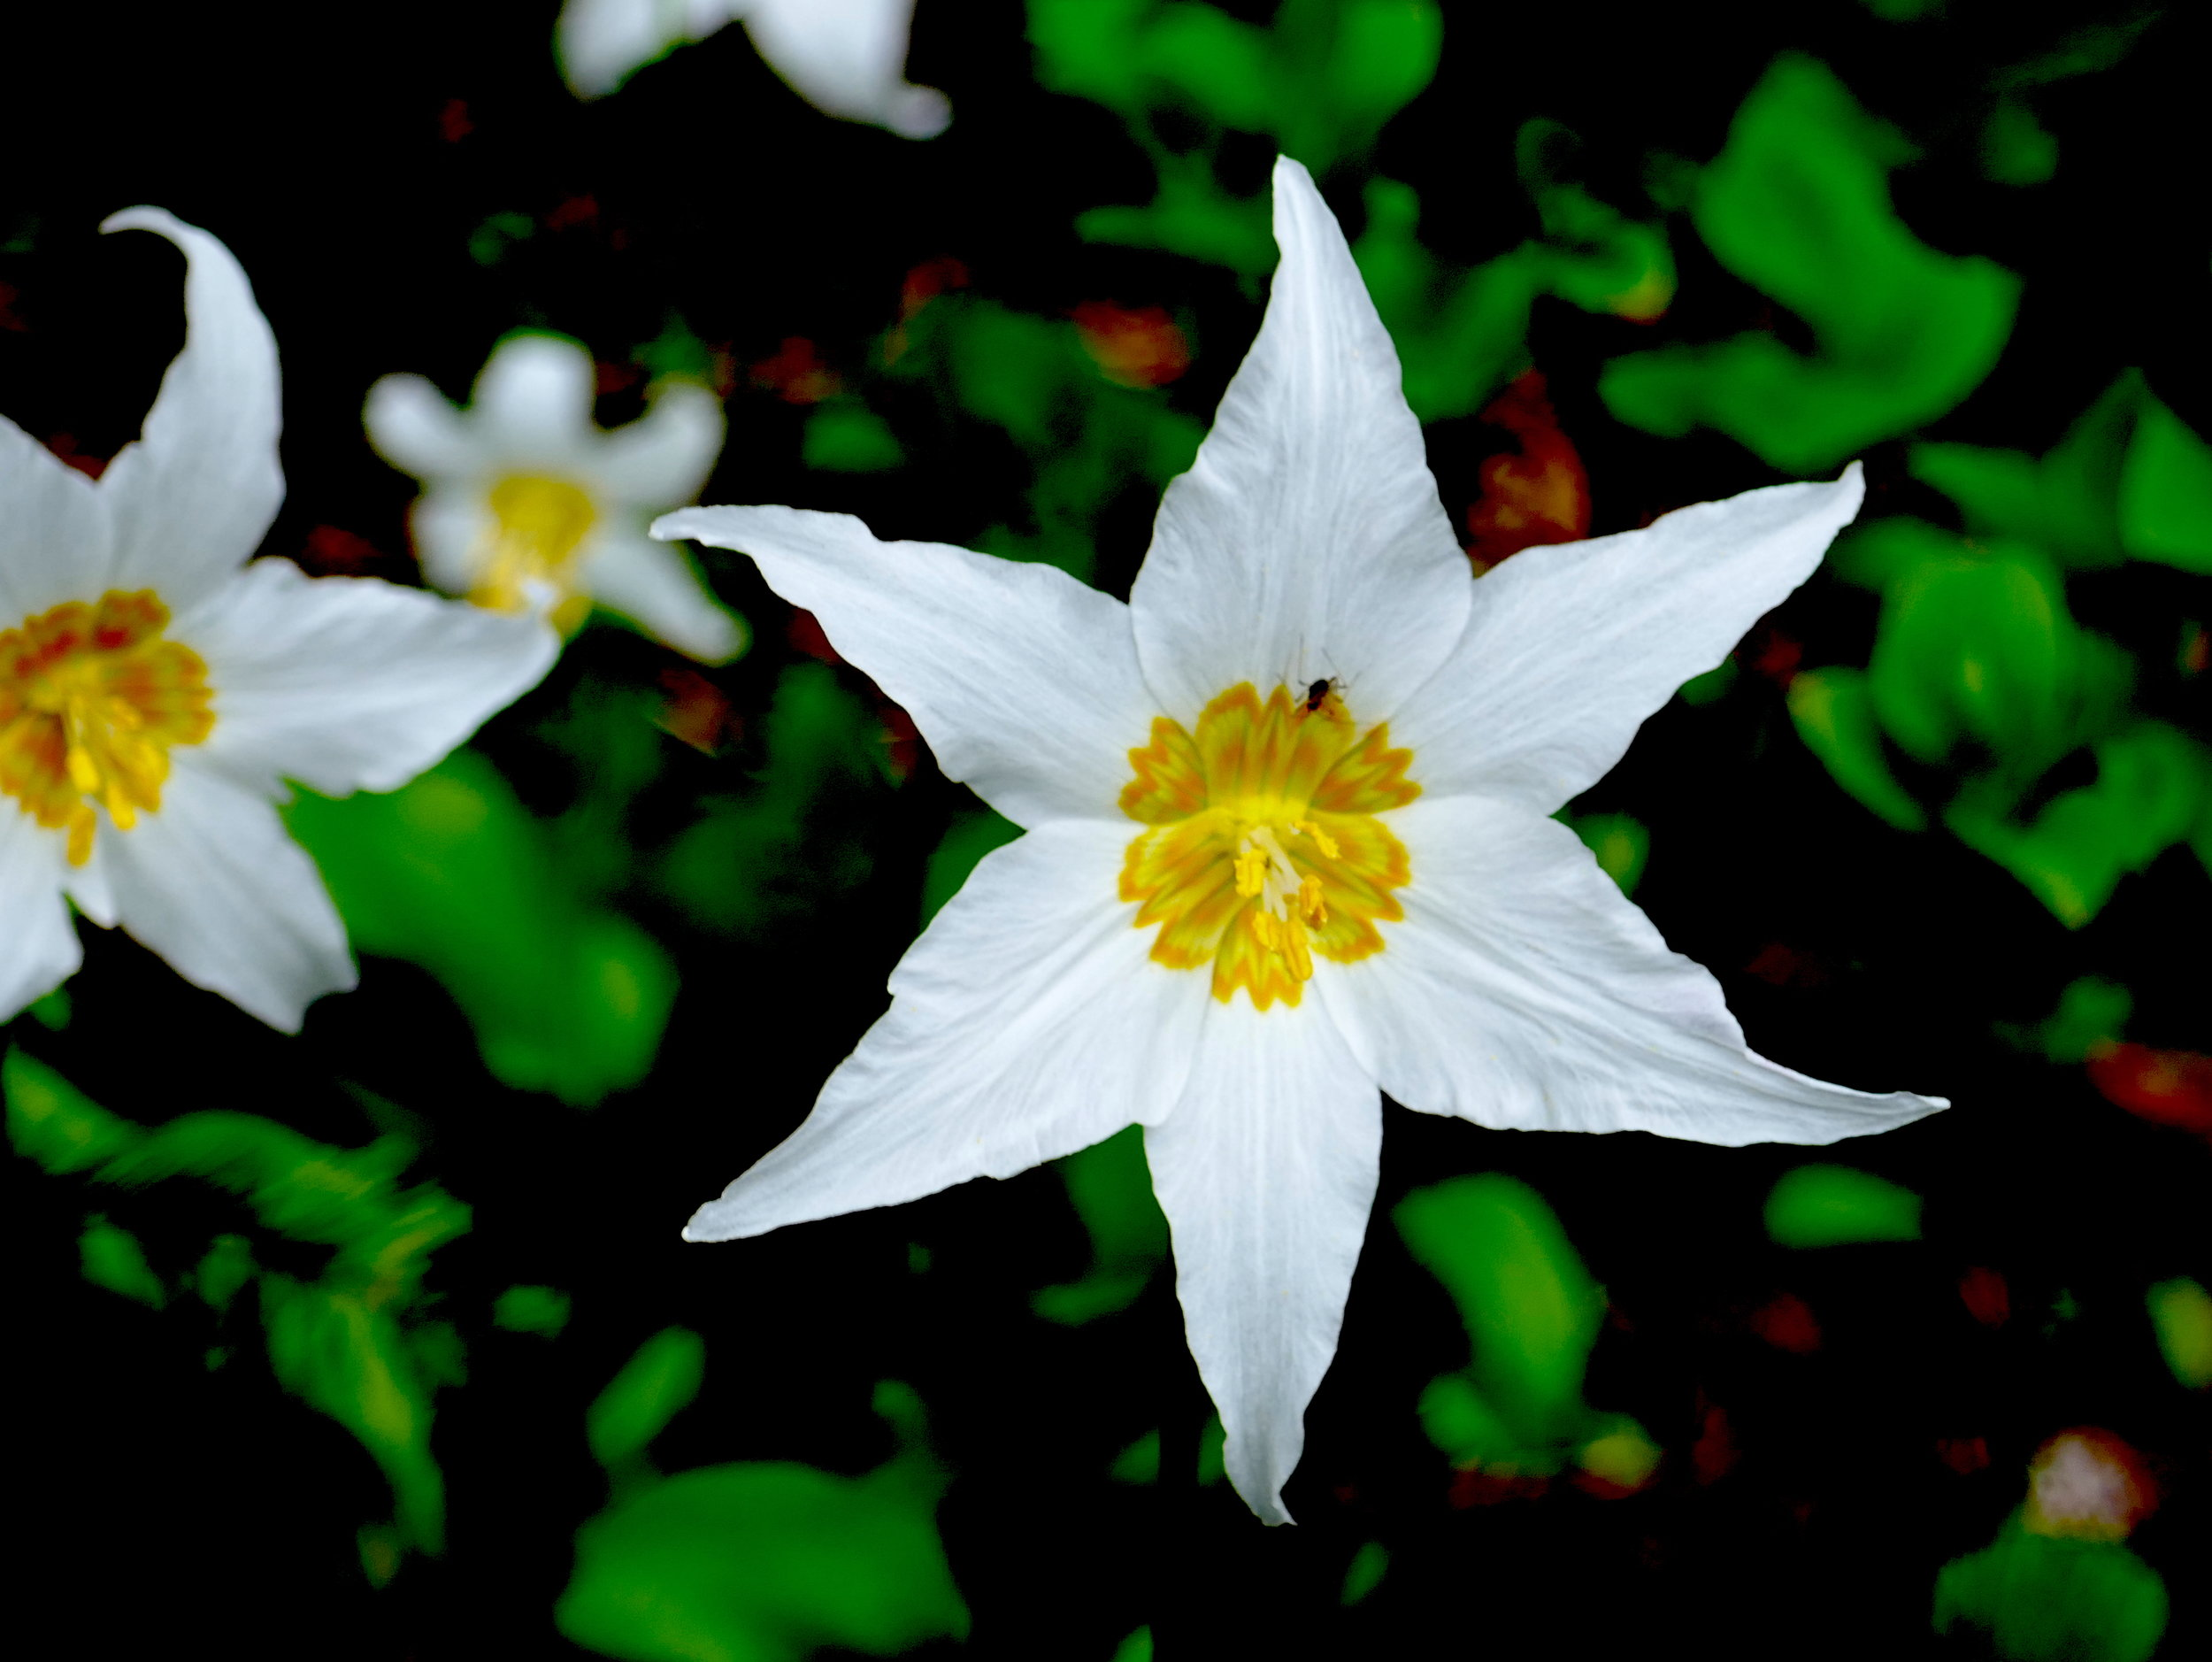 Avalanche lilies in bloom along the PCT